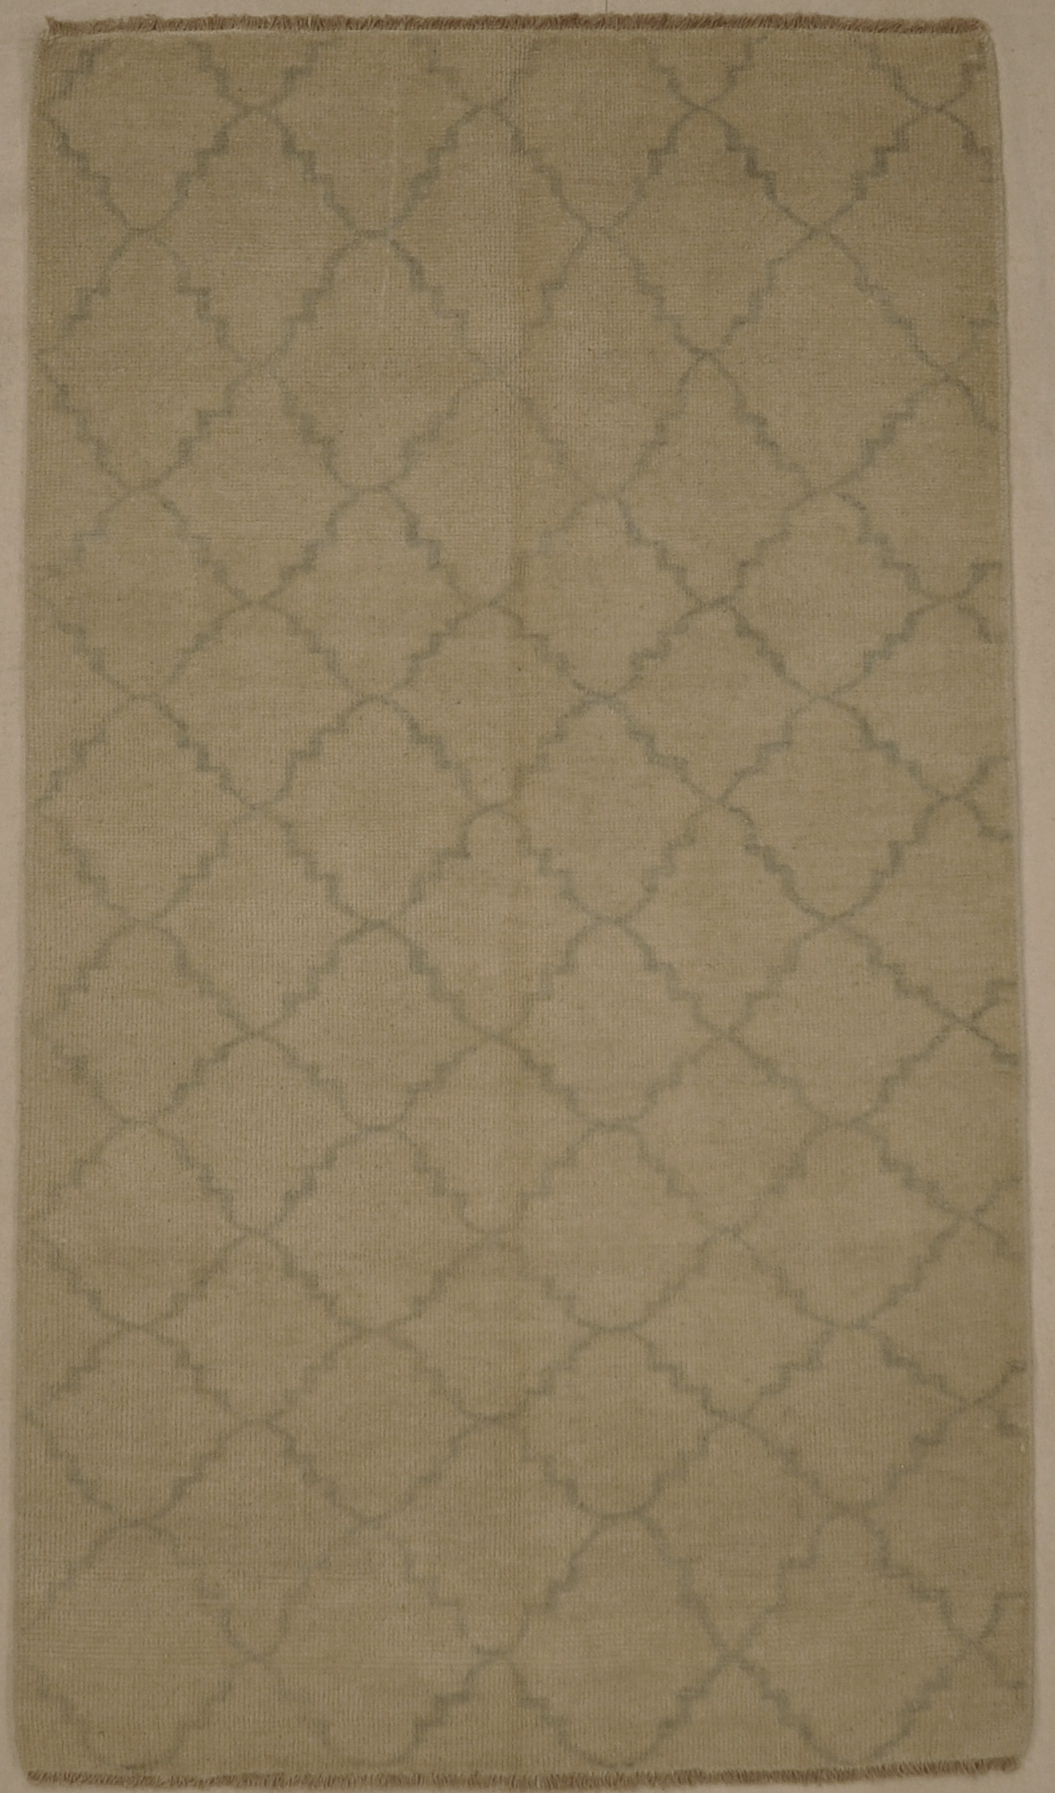 Fine Modern Blue and Beige Trellises Rug. A piece of woven authentic carpet art sold by Santa Barbara Design Center, Rugs and More.